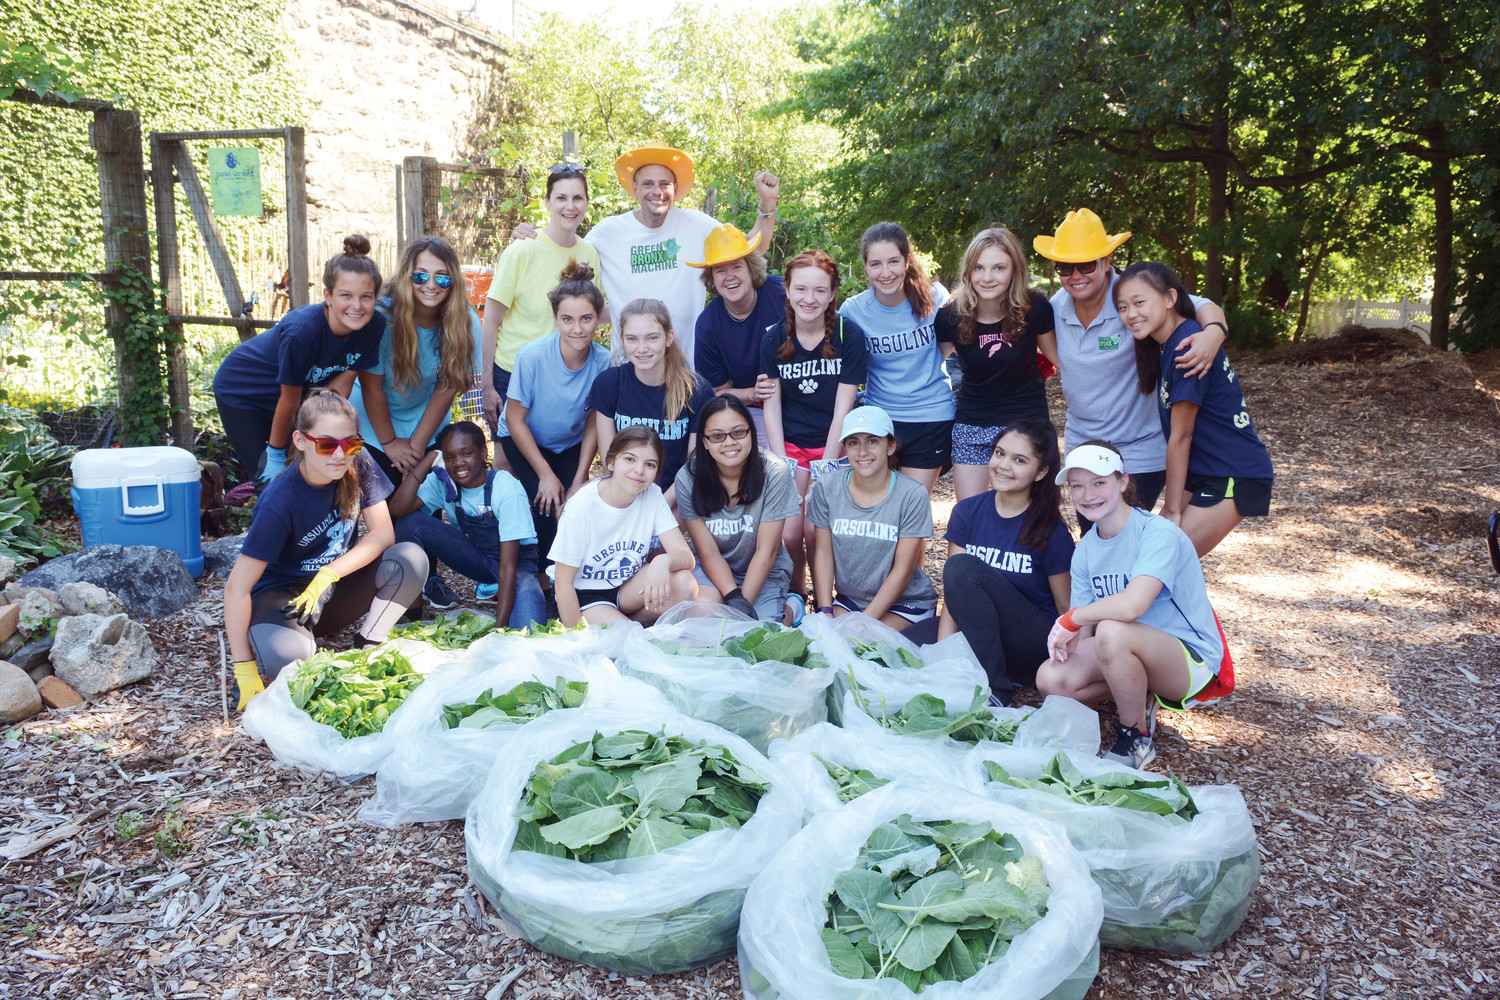 Fifteen students from The Ursuline School in New Rochelle, joined by their new principal, Rosemary Beirne, navy blue shirt and golden hat, reap what they sowed at the Food for Others Garden in the Wakefield section of the Bronx July 10. Students filled bags with collard greens, basil and jalapeno peppers.